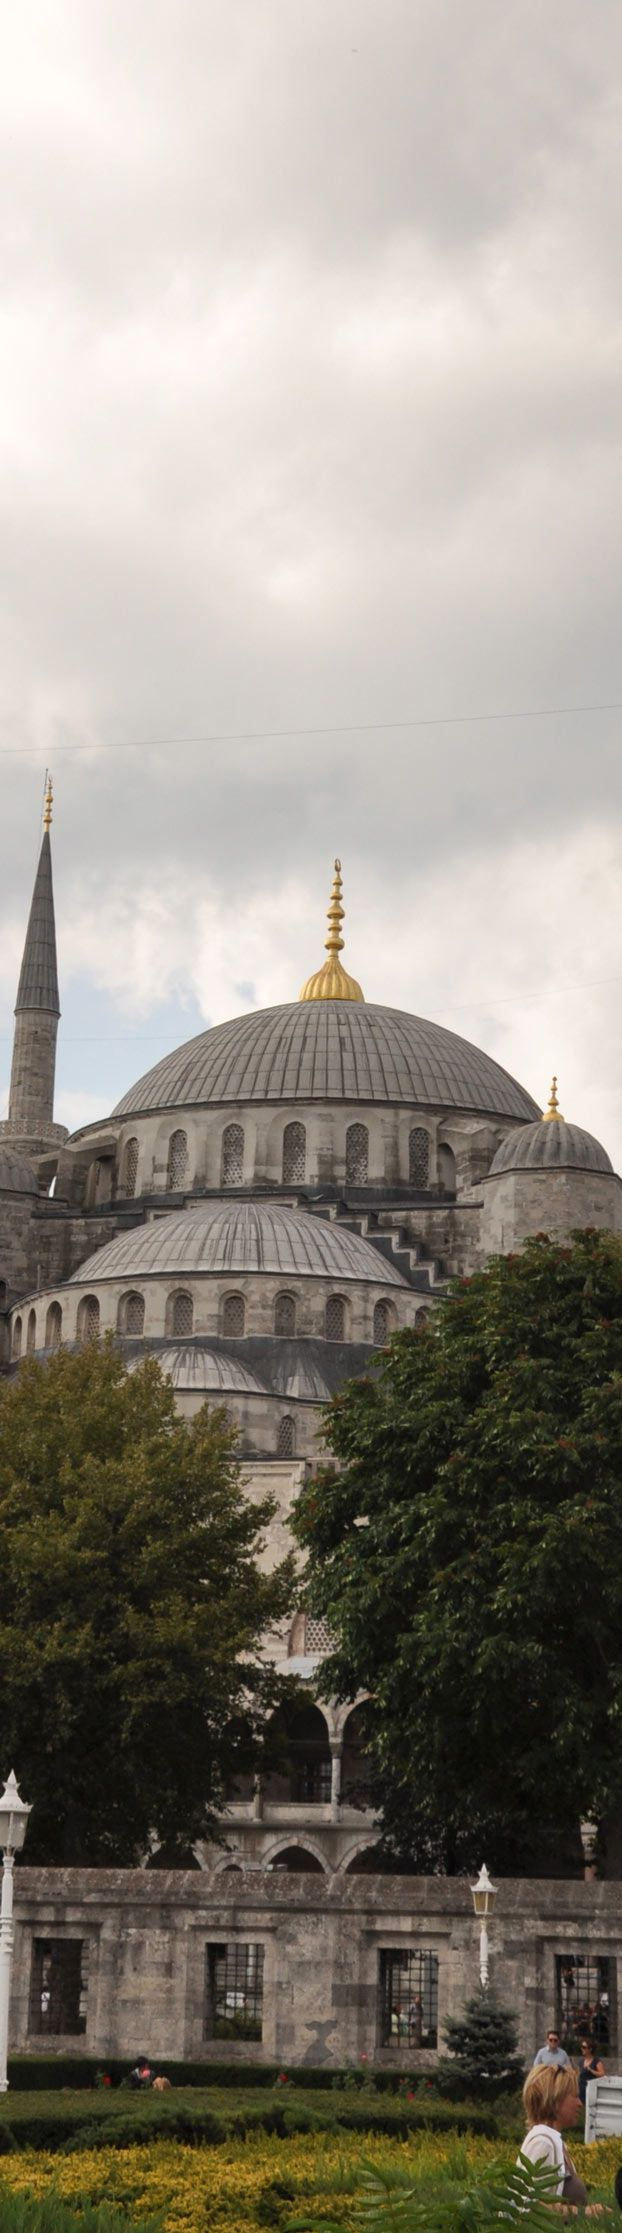 """Dome of The Sultan Ahmet Mosque """"Blue Mosque"""" in Istanbul 